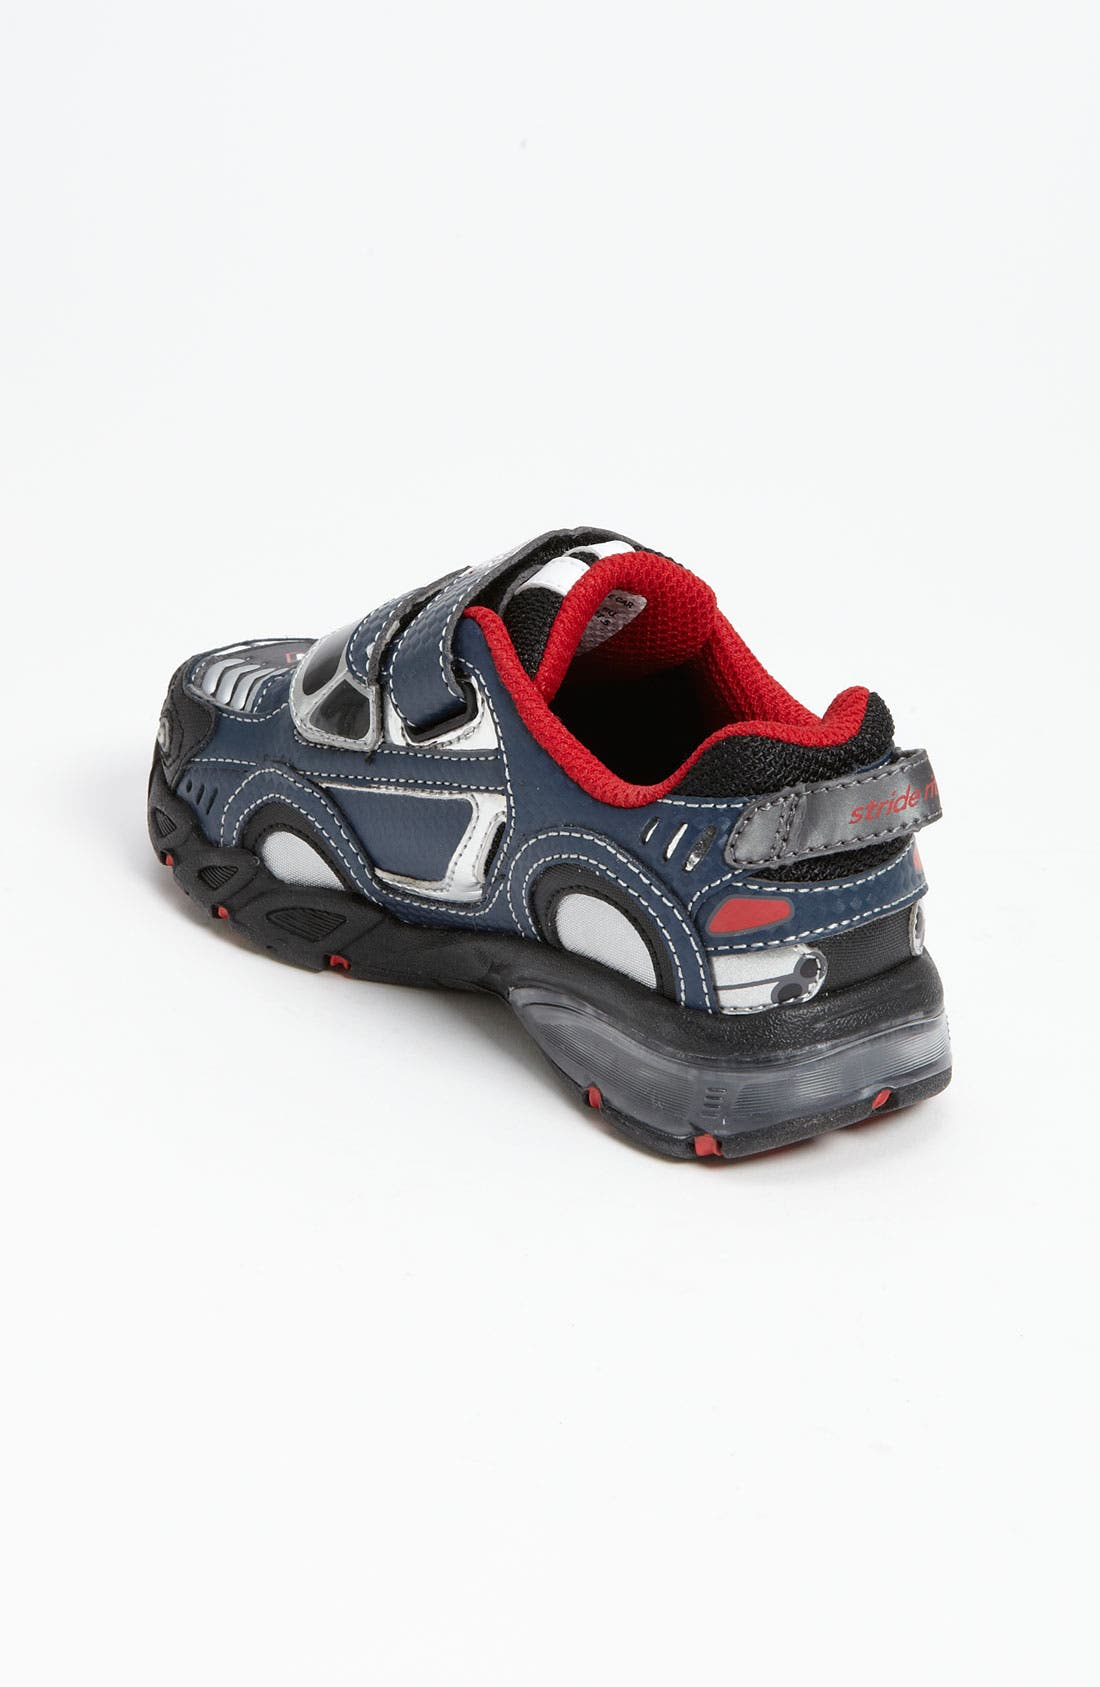 Alternate Image 2  - Stride Rite 'Vroomz' Sneaker (Walker & Toddler)